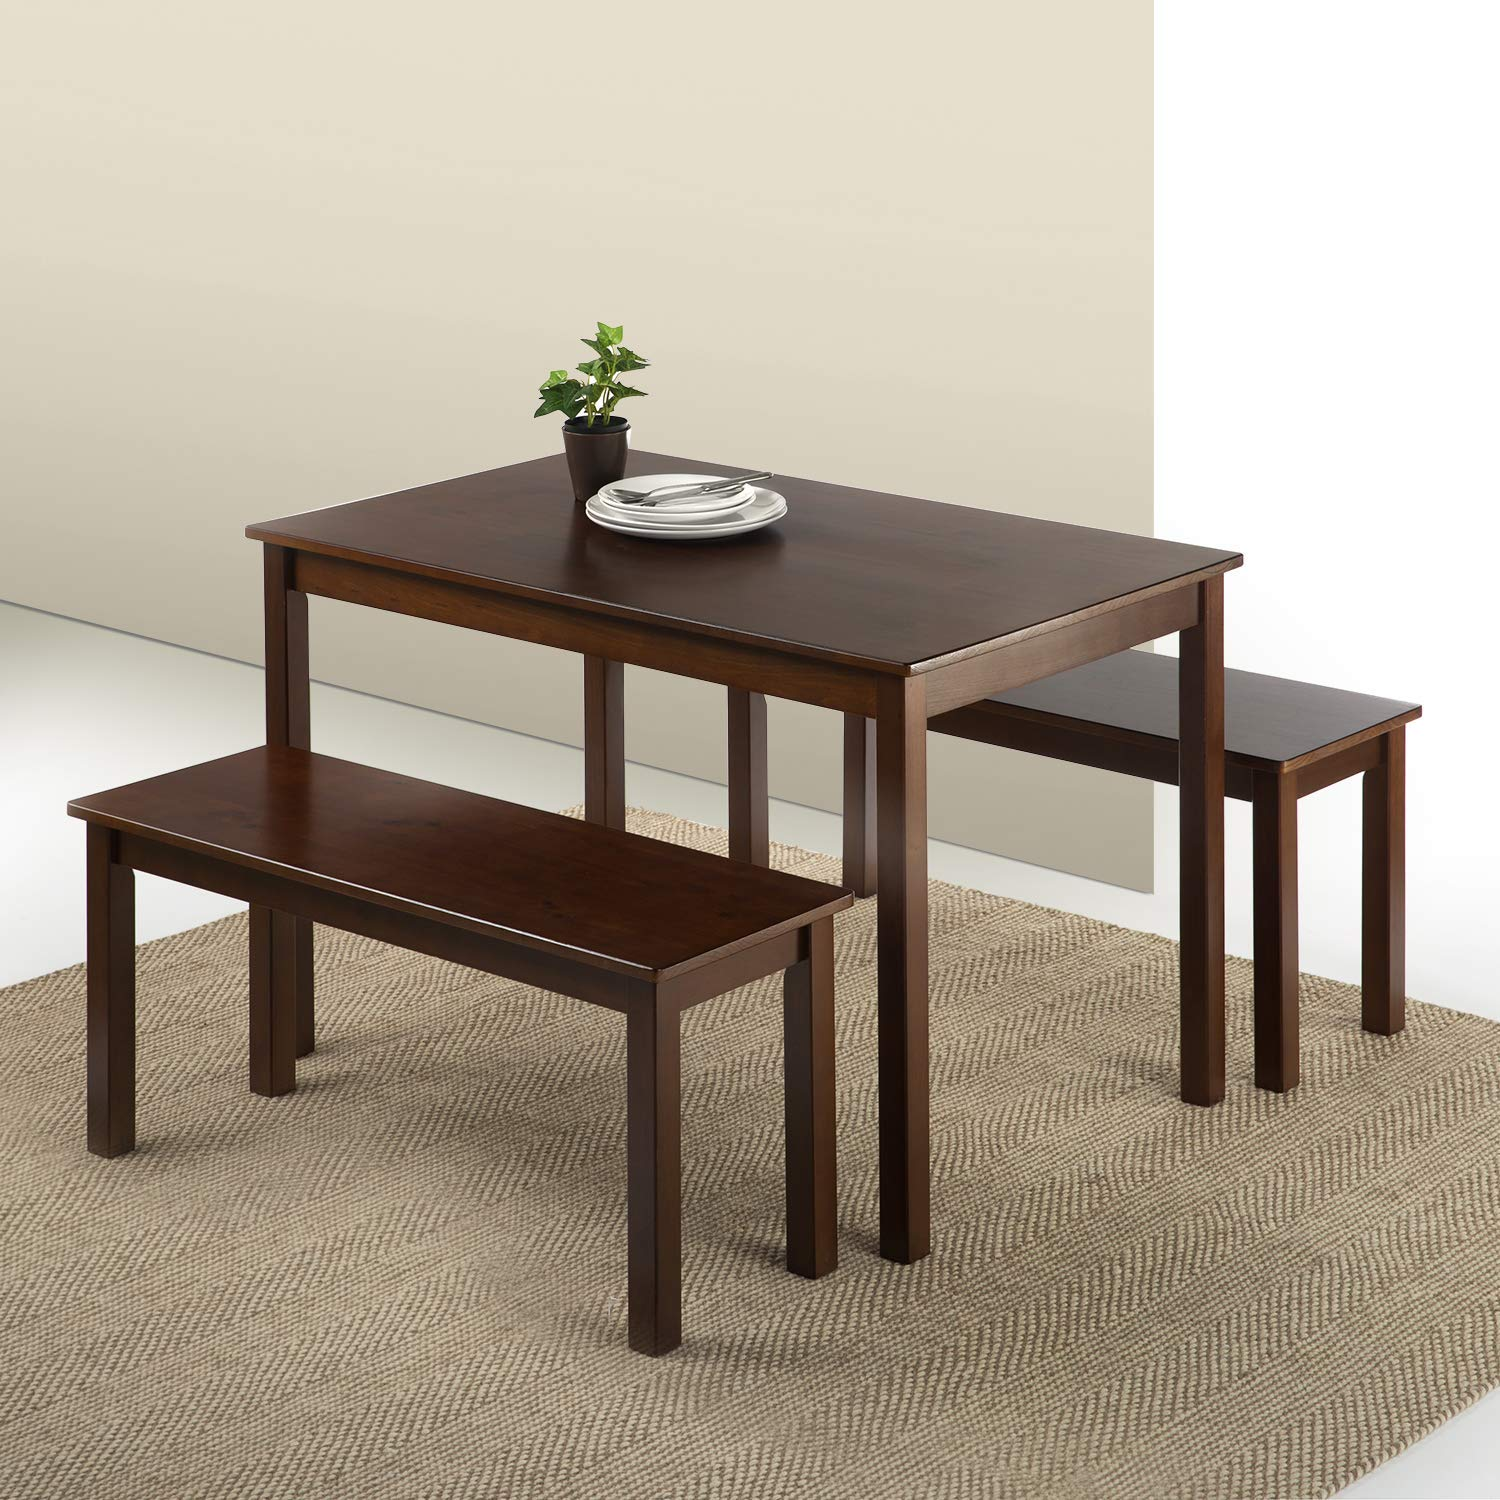 Dining Table Set Deals: Amazon Deal: Zinus Juliet Espresso Wood Dining Table Set